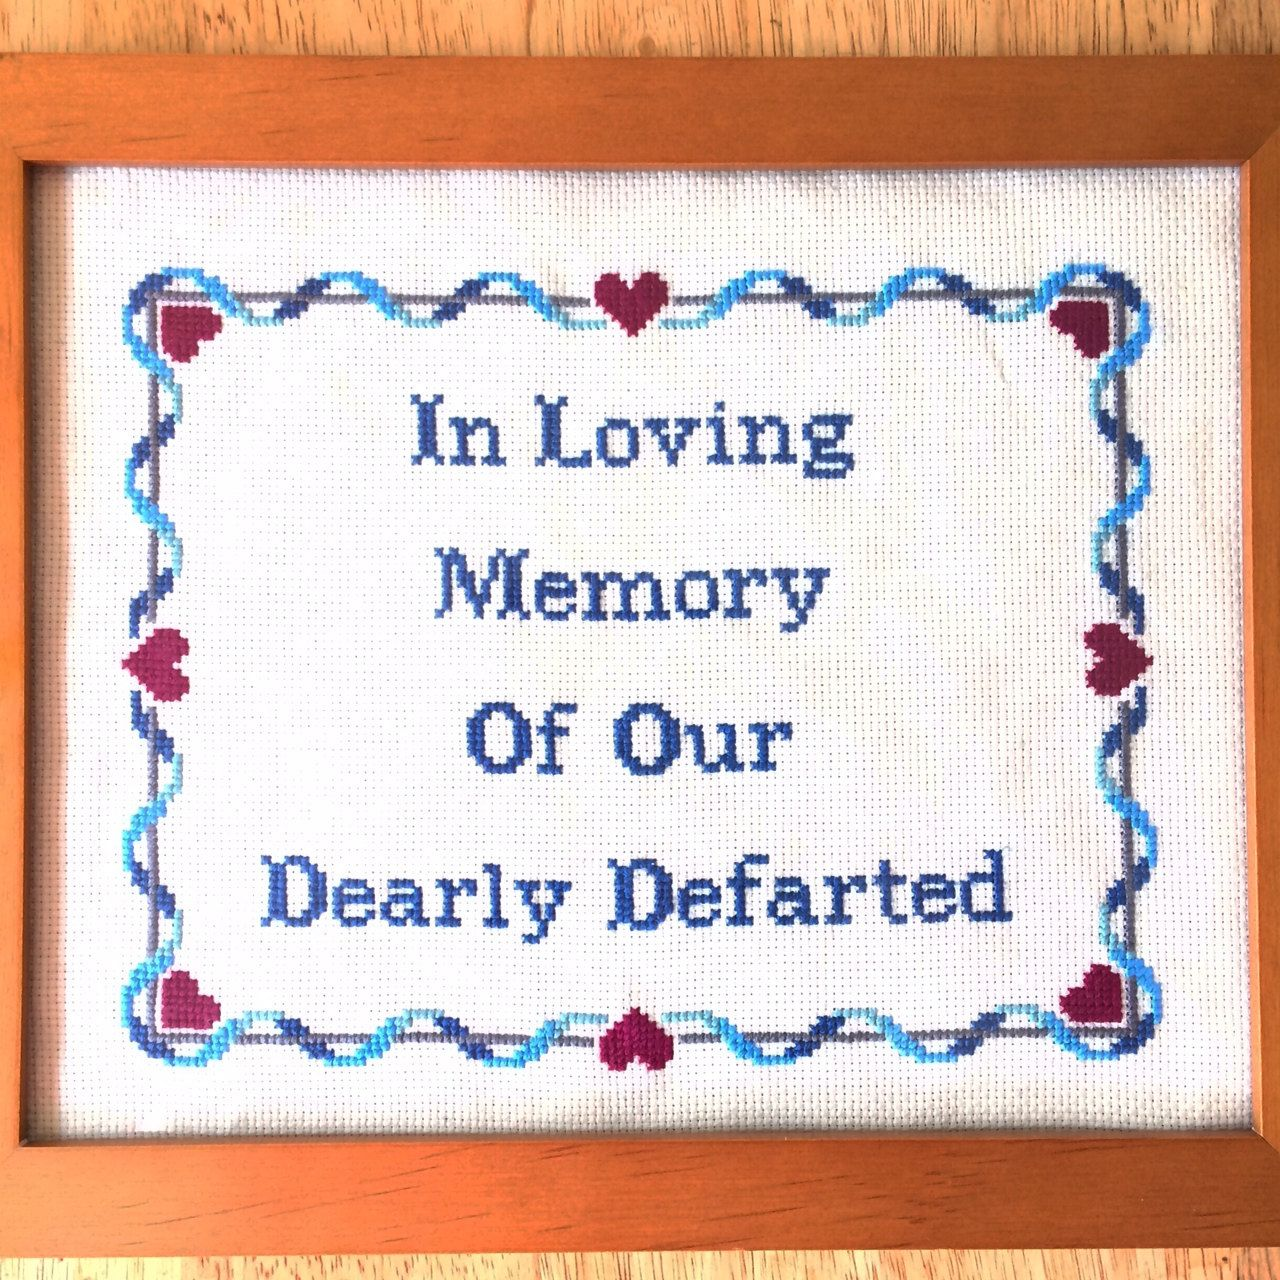 pattern subversive funny bathroom cross stitch in loving memory of, Powerpoint templates